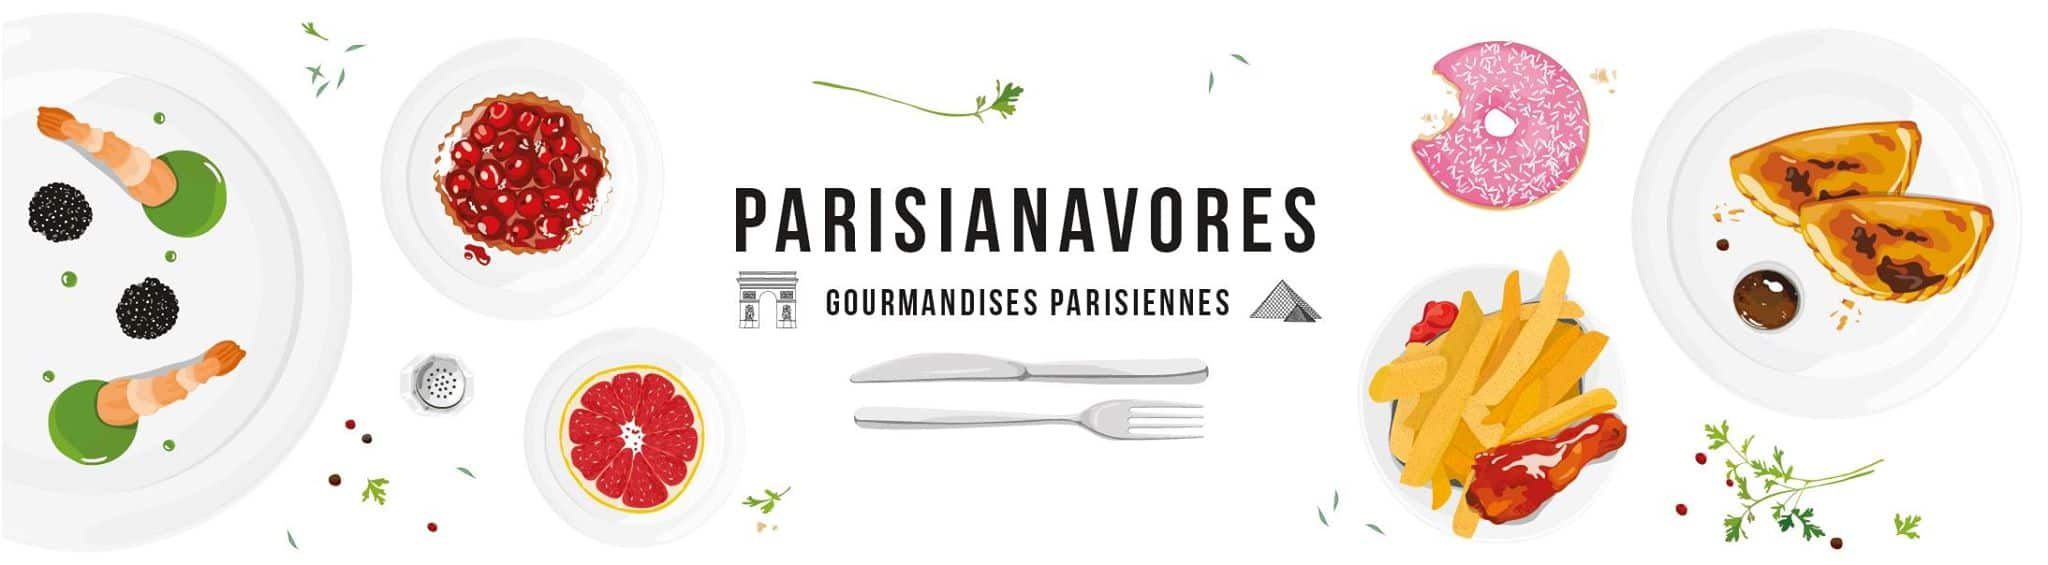 parisianavores-restaurant-paris